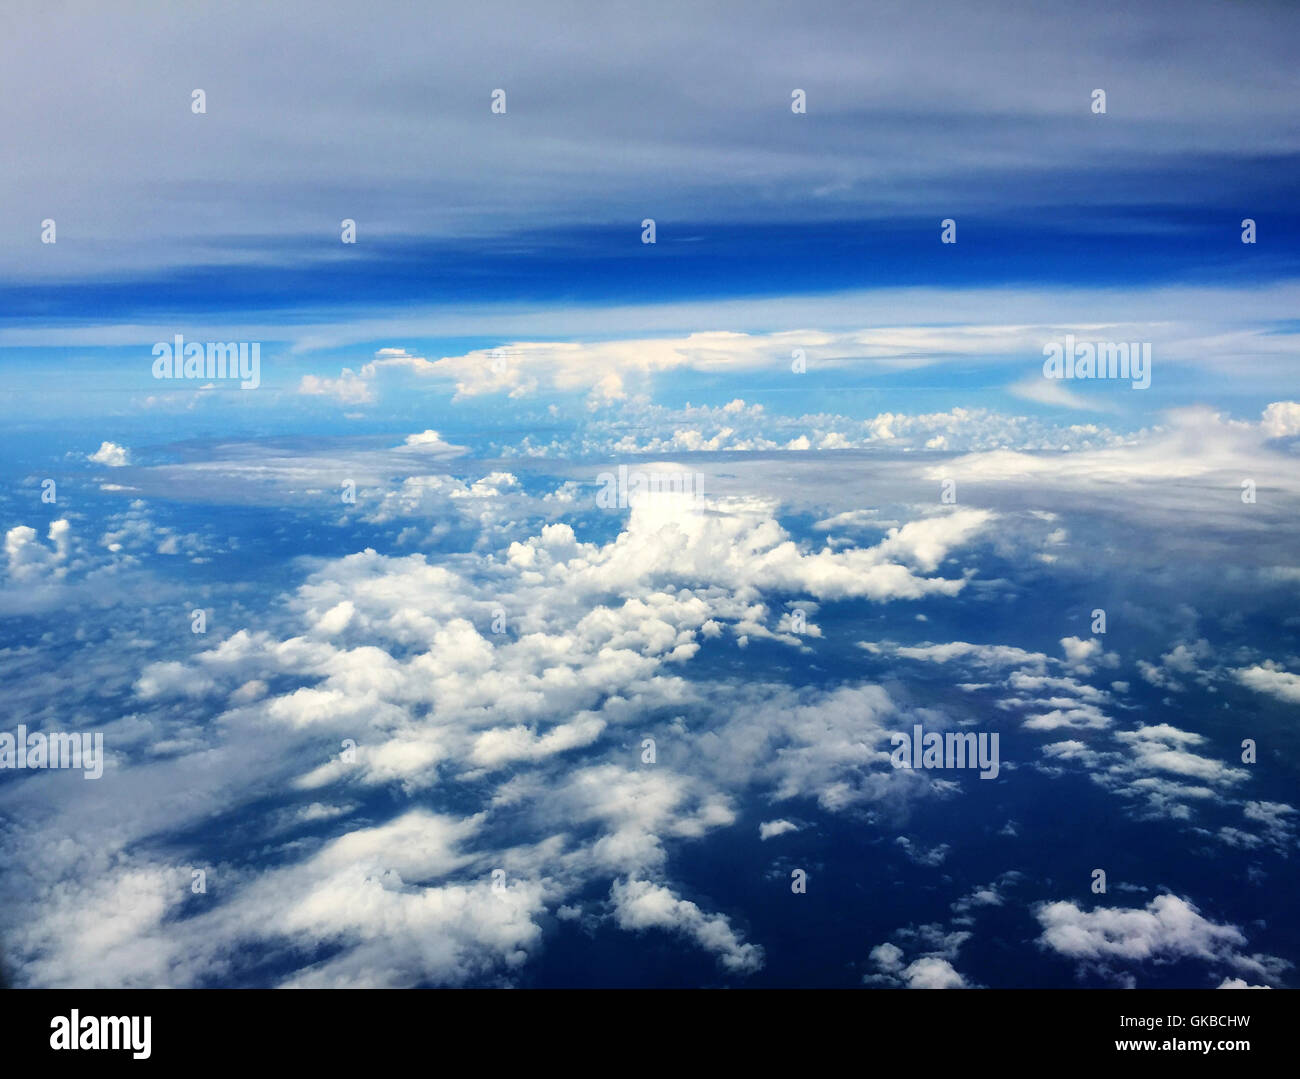 Aerial of clouds in a blue sky - Stock Image